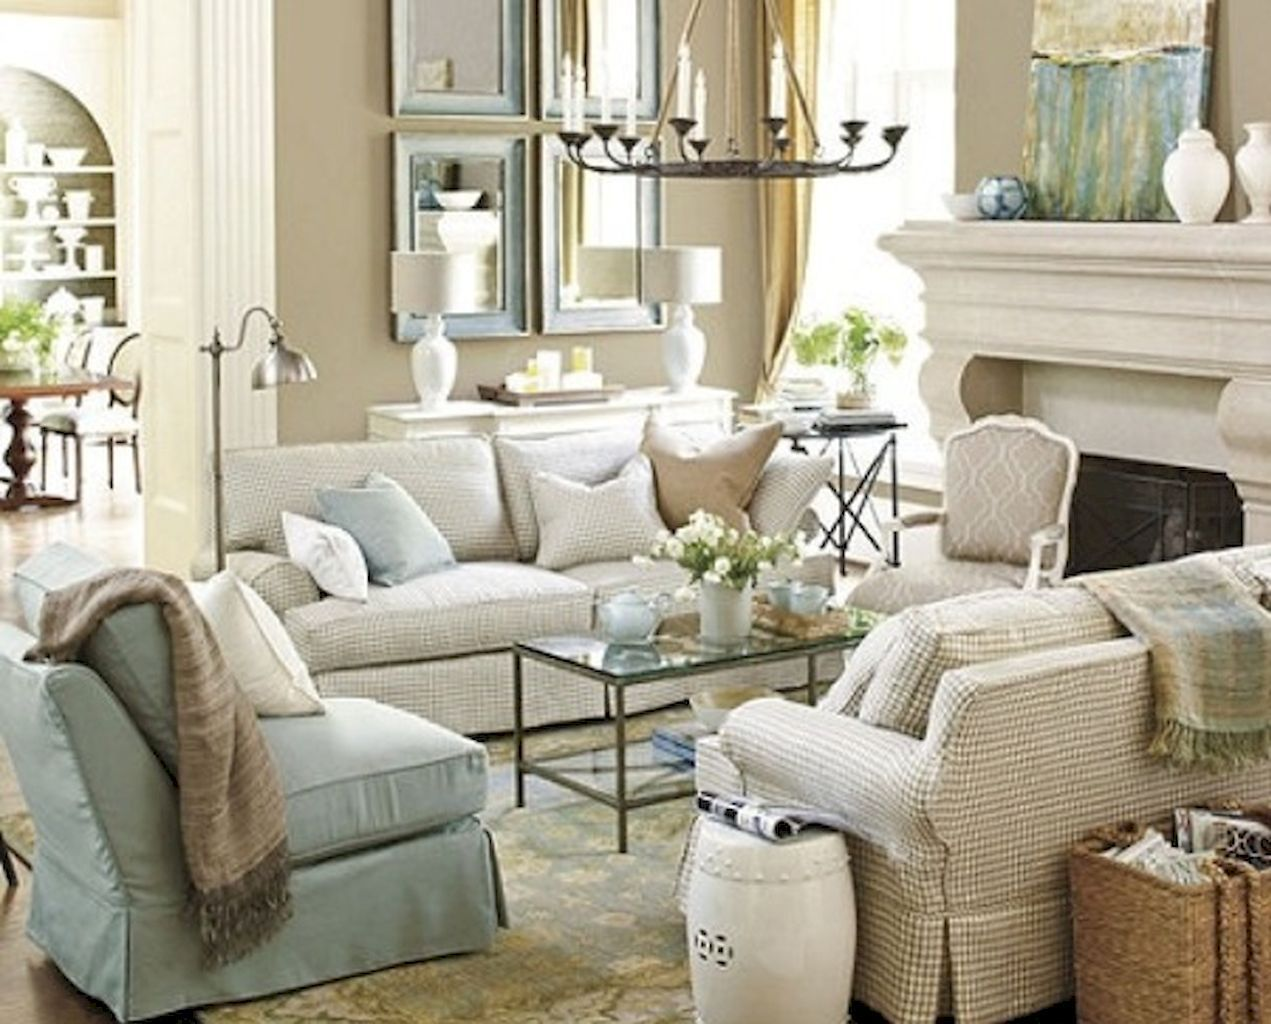 French Country Living Room Ideas 7 Living Room Furniture Arrangement Blue And White Living Room French Country Decorating Living Room #small #country #living #room #ideas